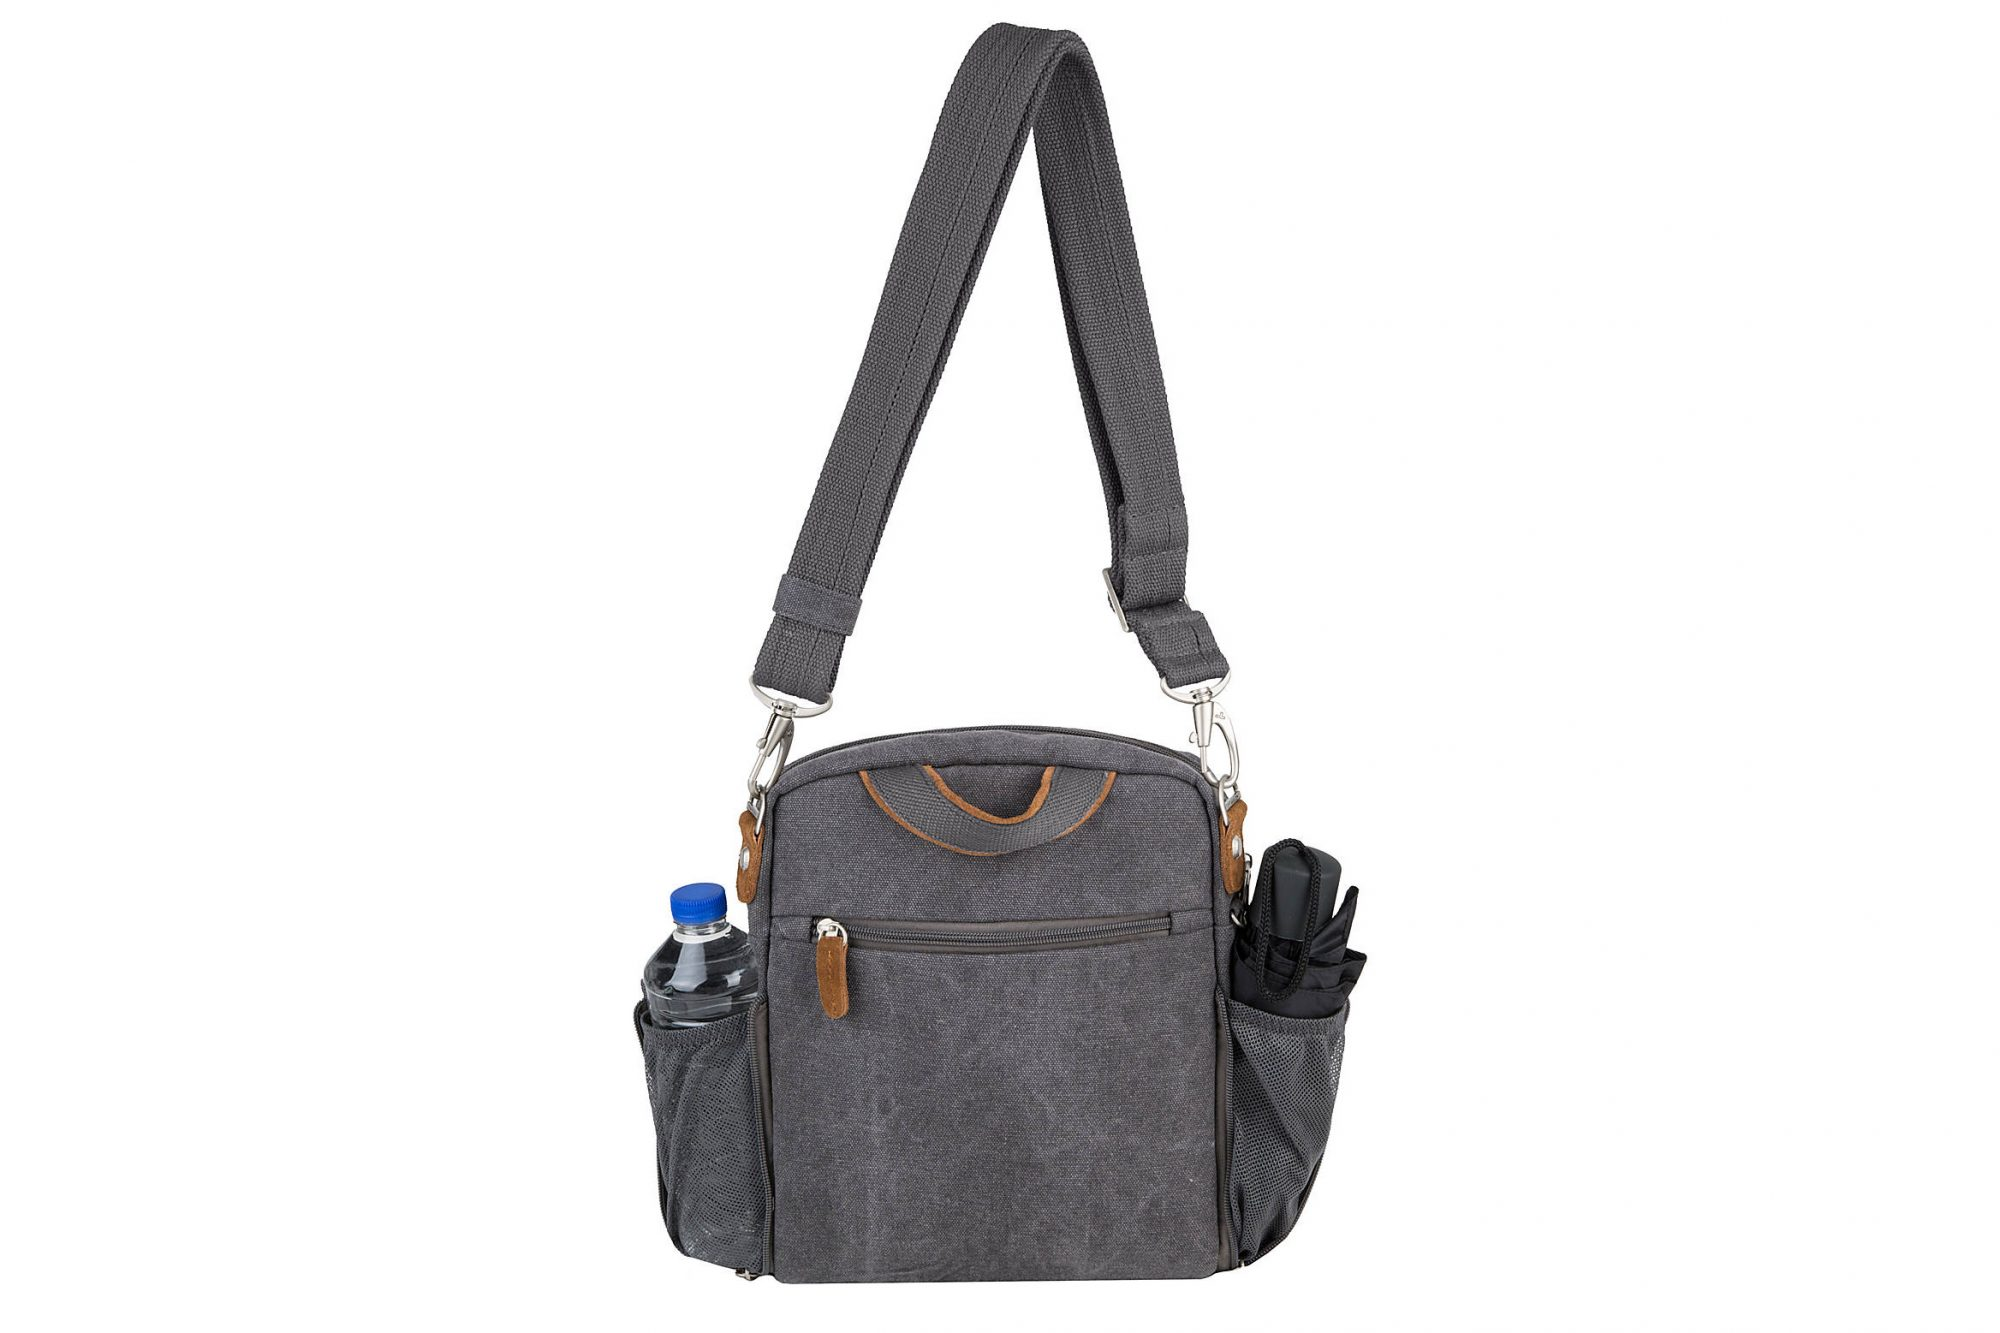 Travelon Heritage Tour Bag